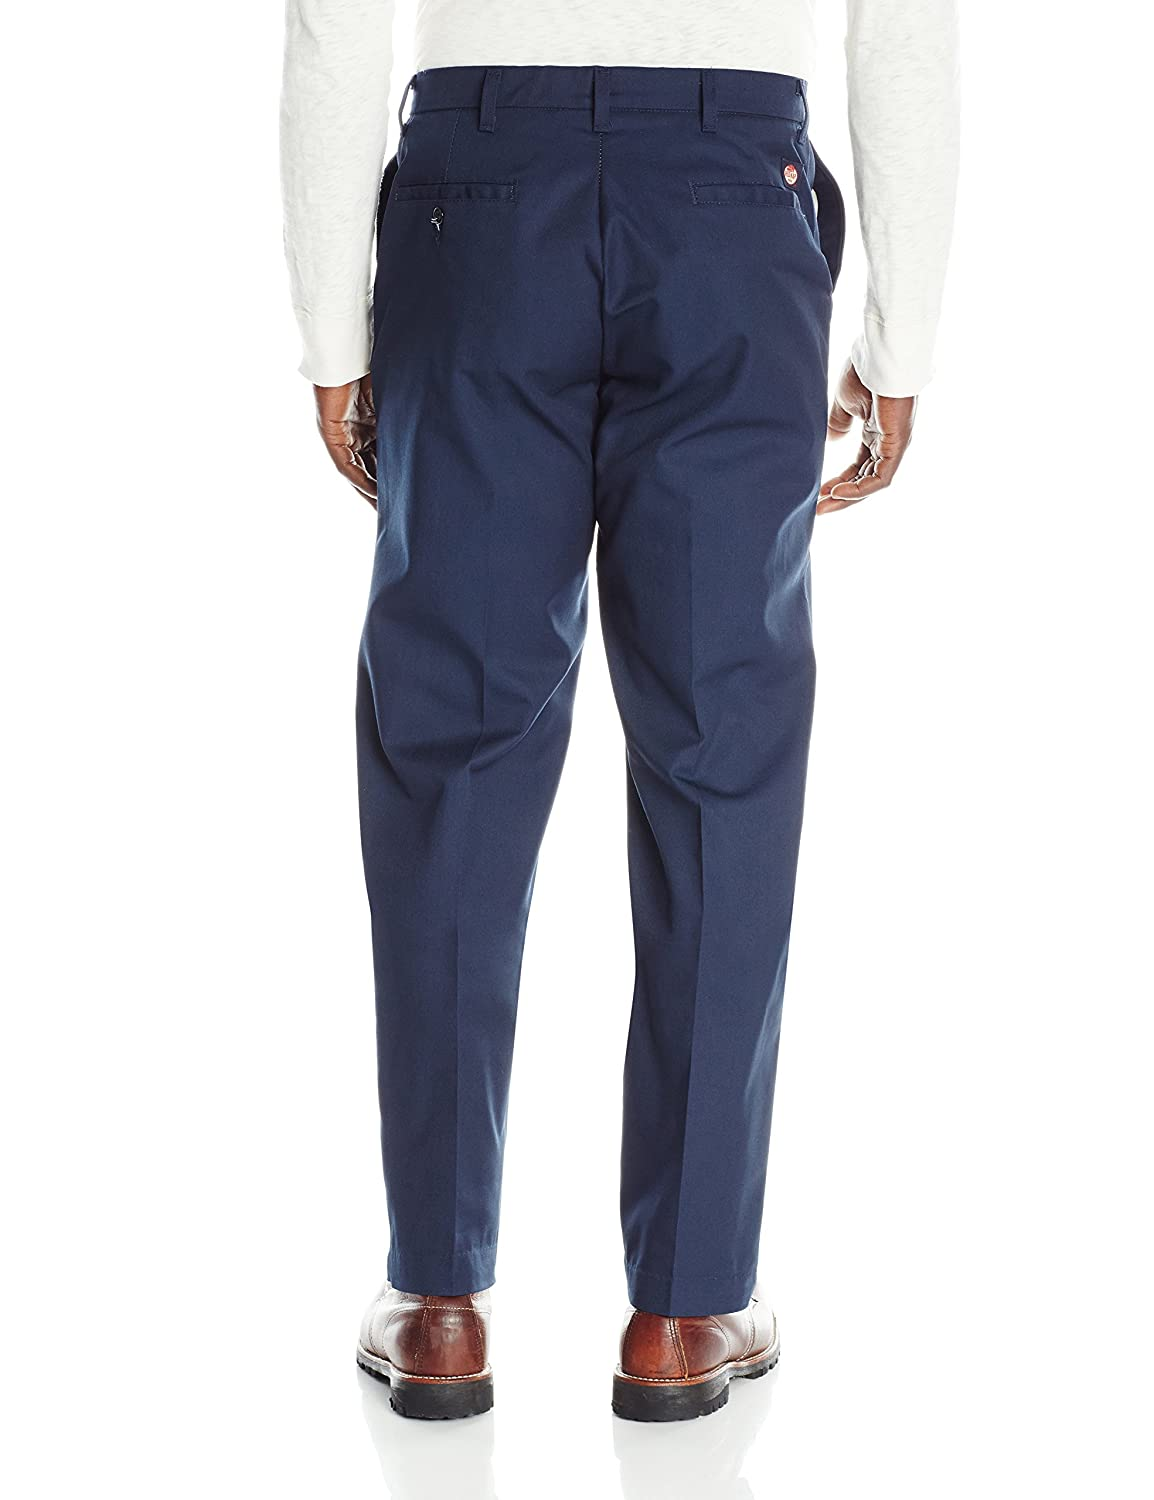 35W x 30L Navy Bulwark Mens Flame Resistant 9 oz Twill Cotton Work Pant